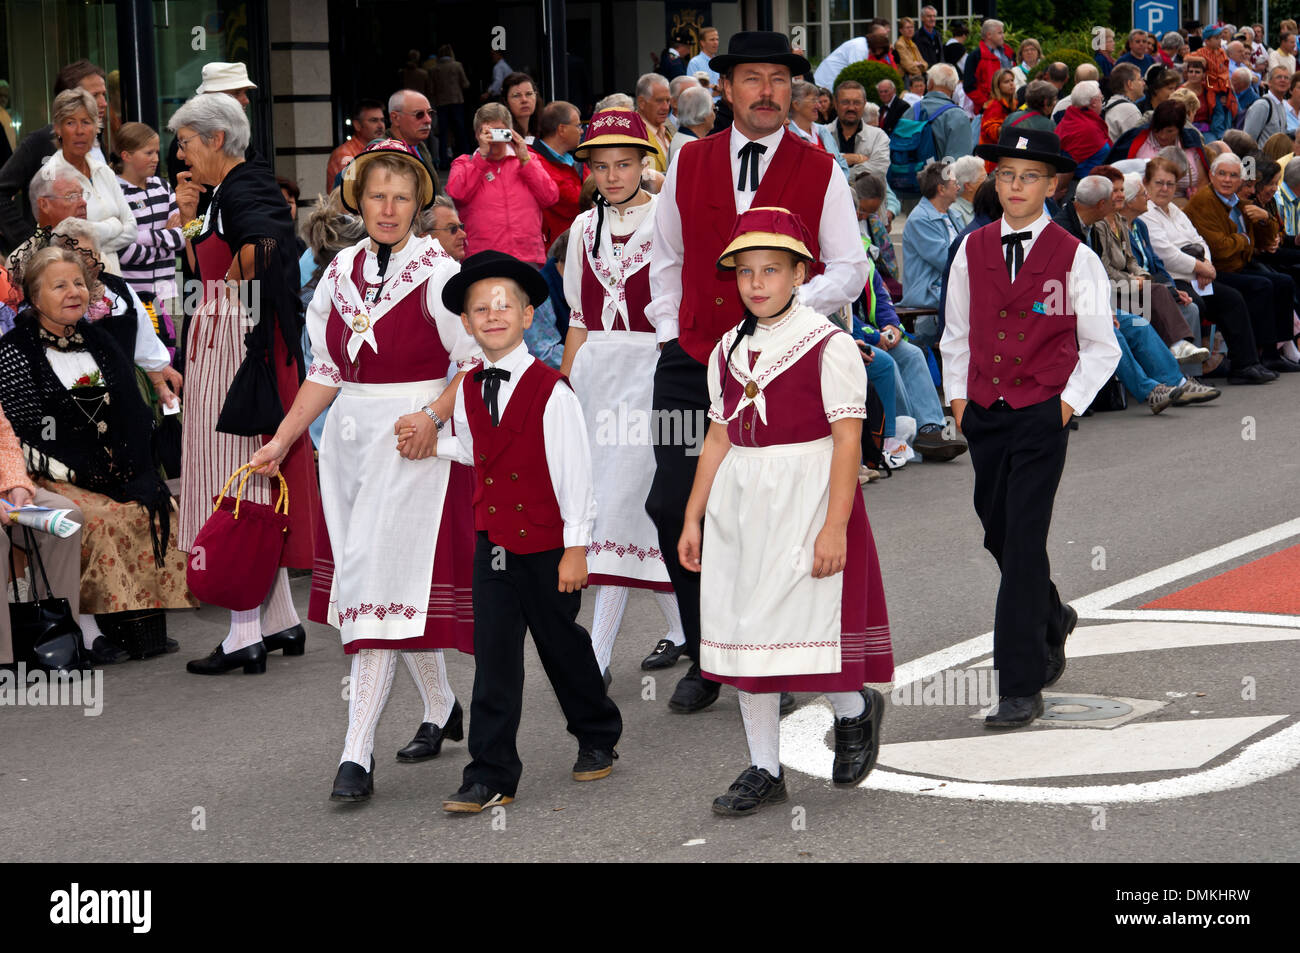 What is the name of Switzerland's national costume?